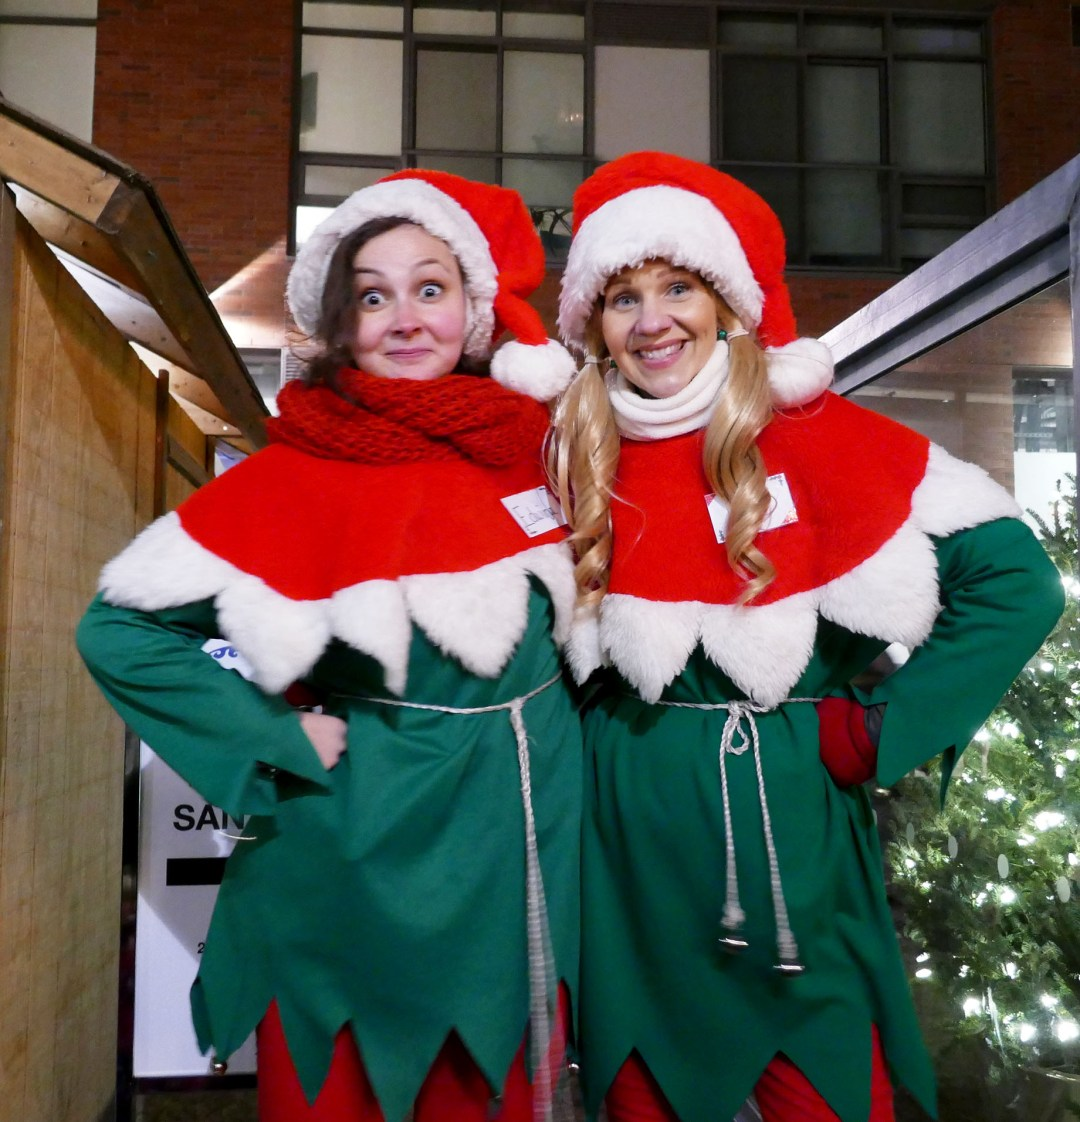 Santa's Elves at the Toronto Christmas Market for boomervoice